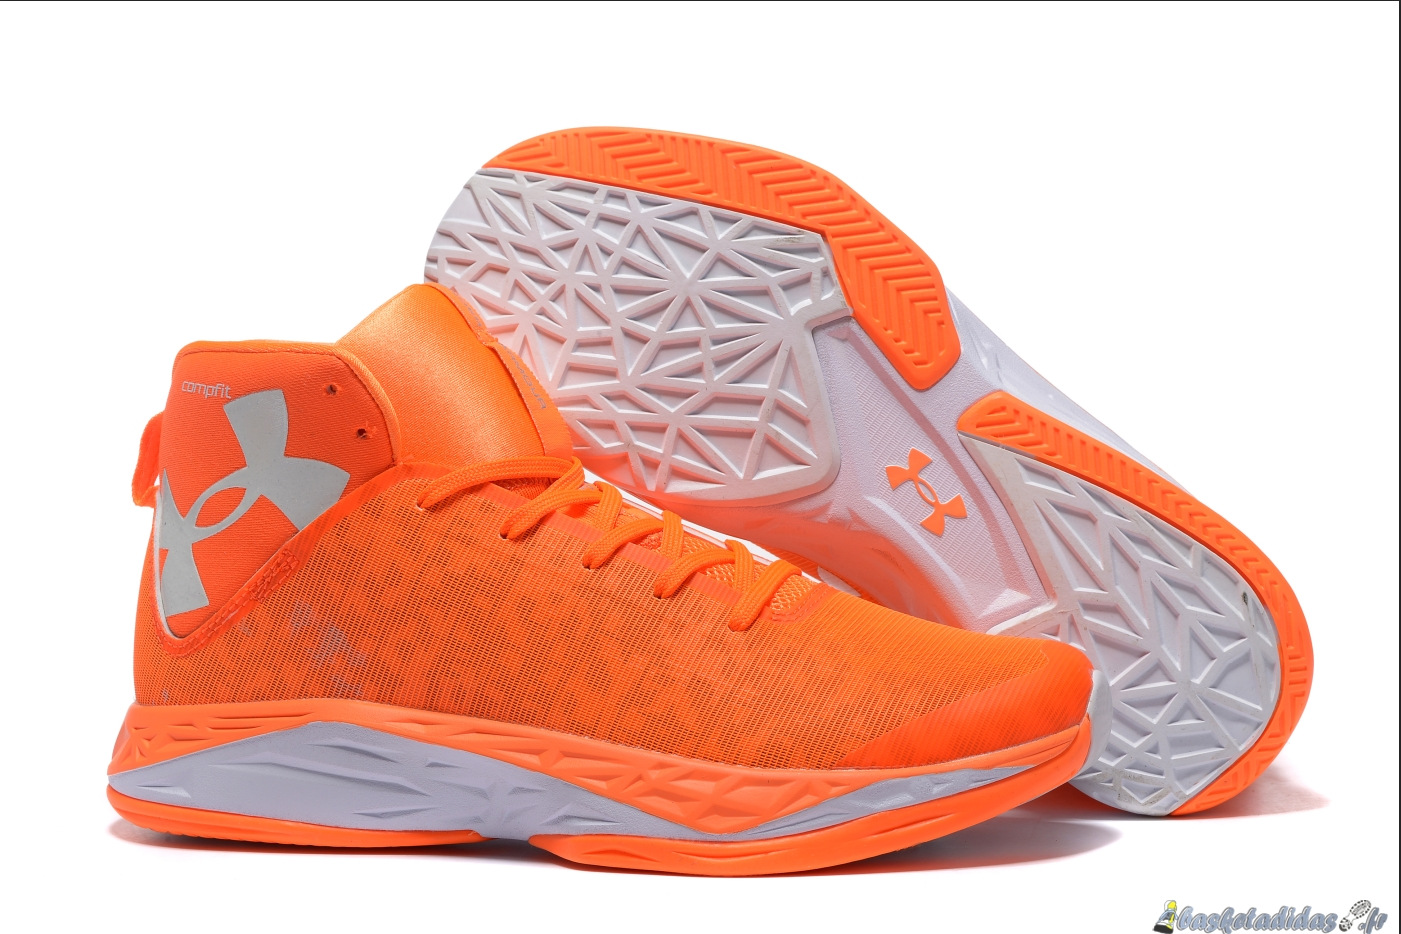 Chaussure de Basket Stephen Curry 6 Homme Orange